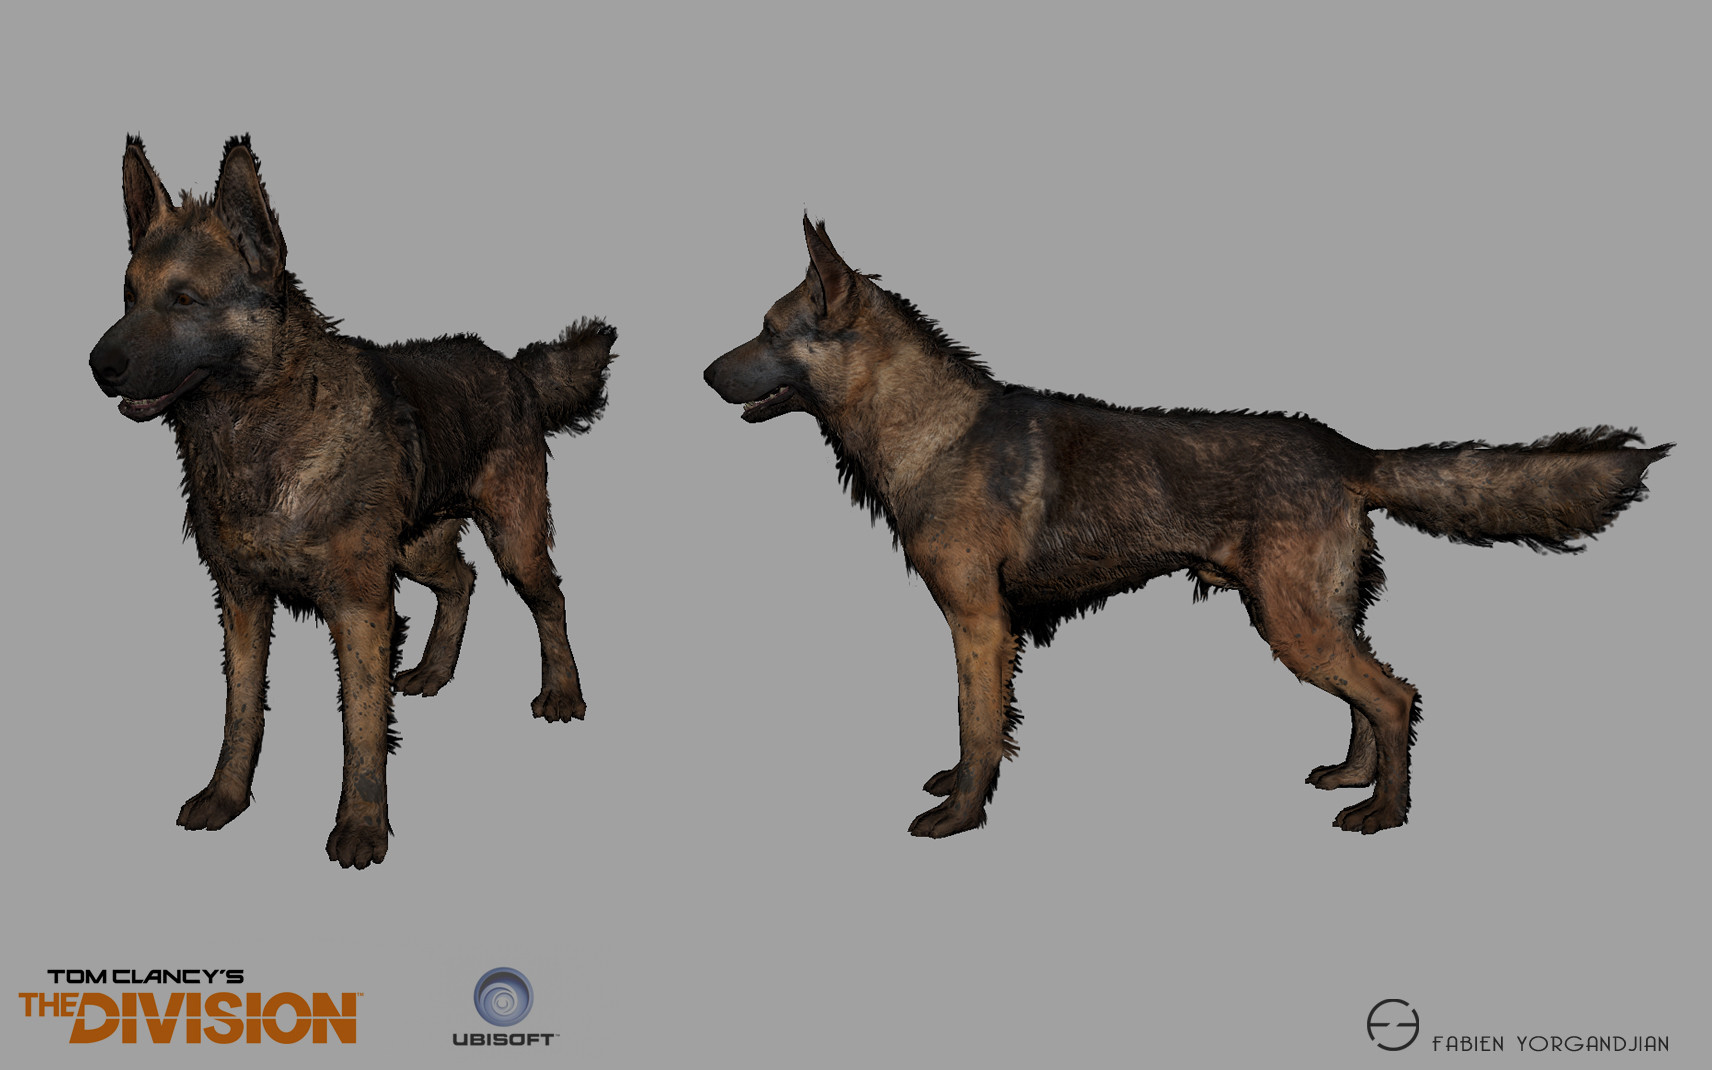 Fabien yorgandjian the division dog01 ingame